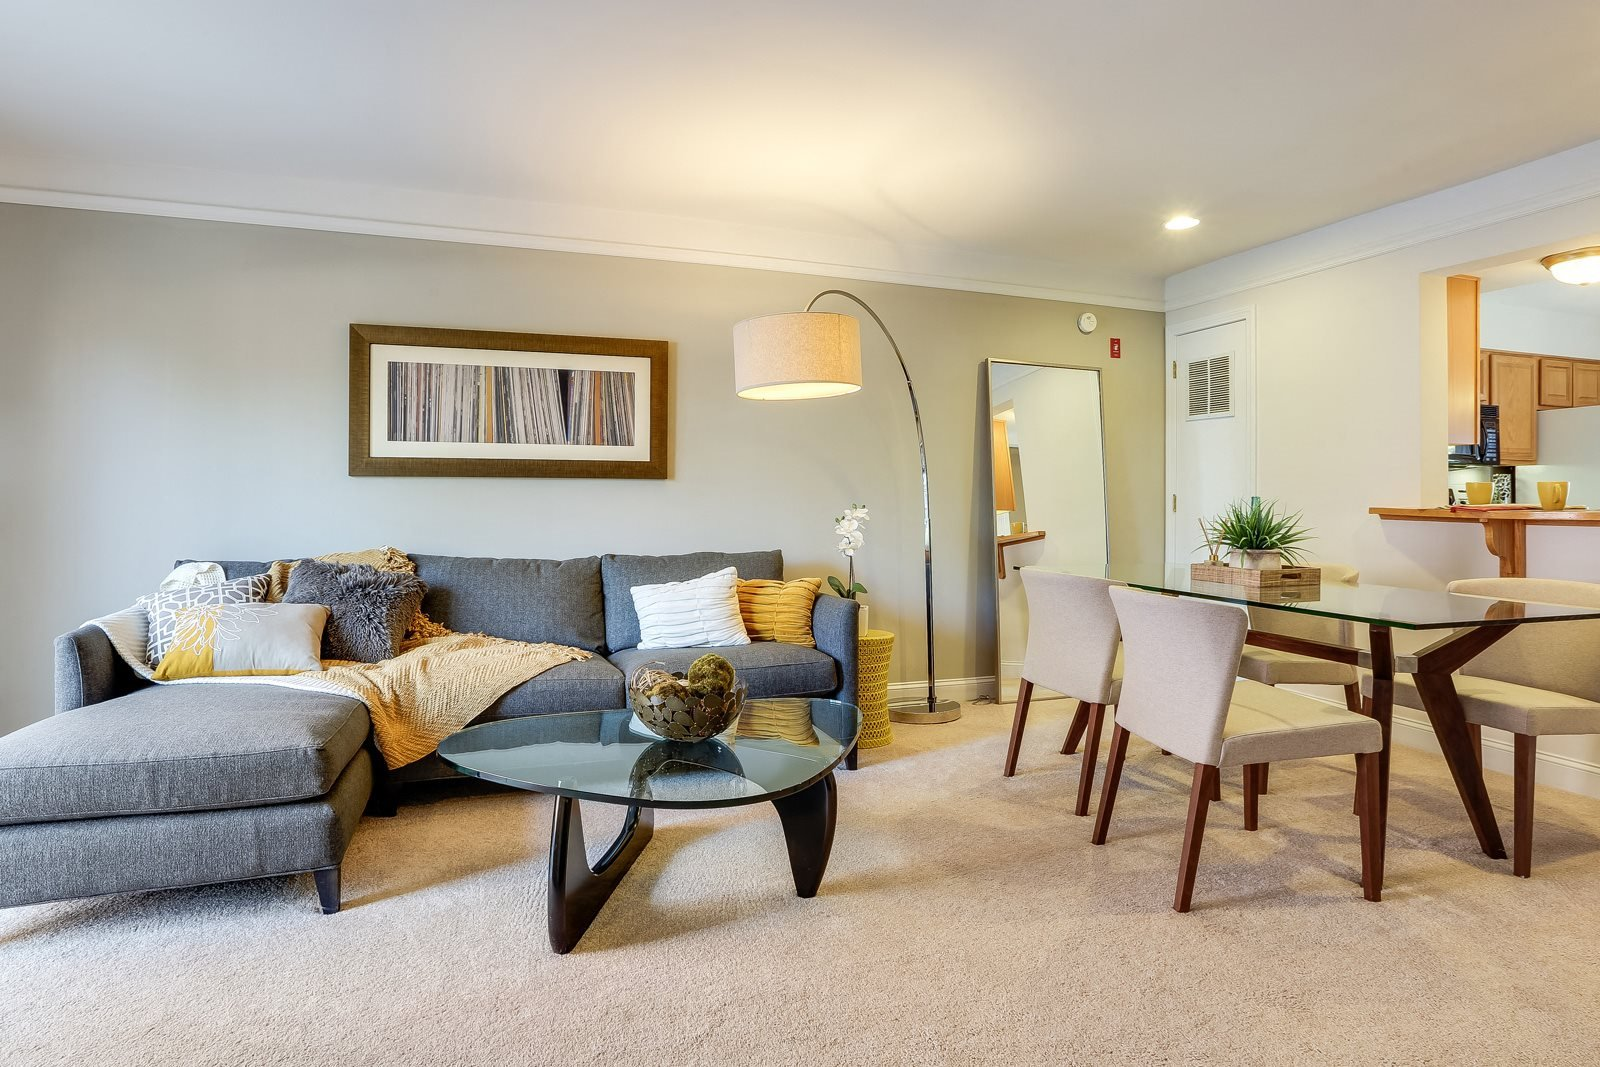 Living Room and Dining Room at Windsor Village at Waltham, 02452, MA